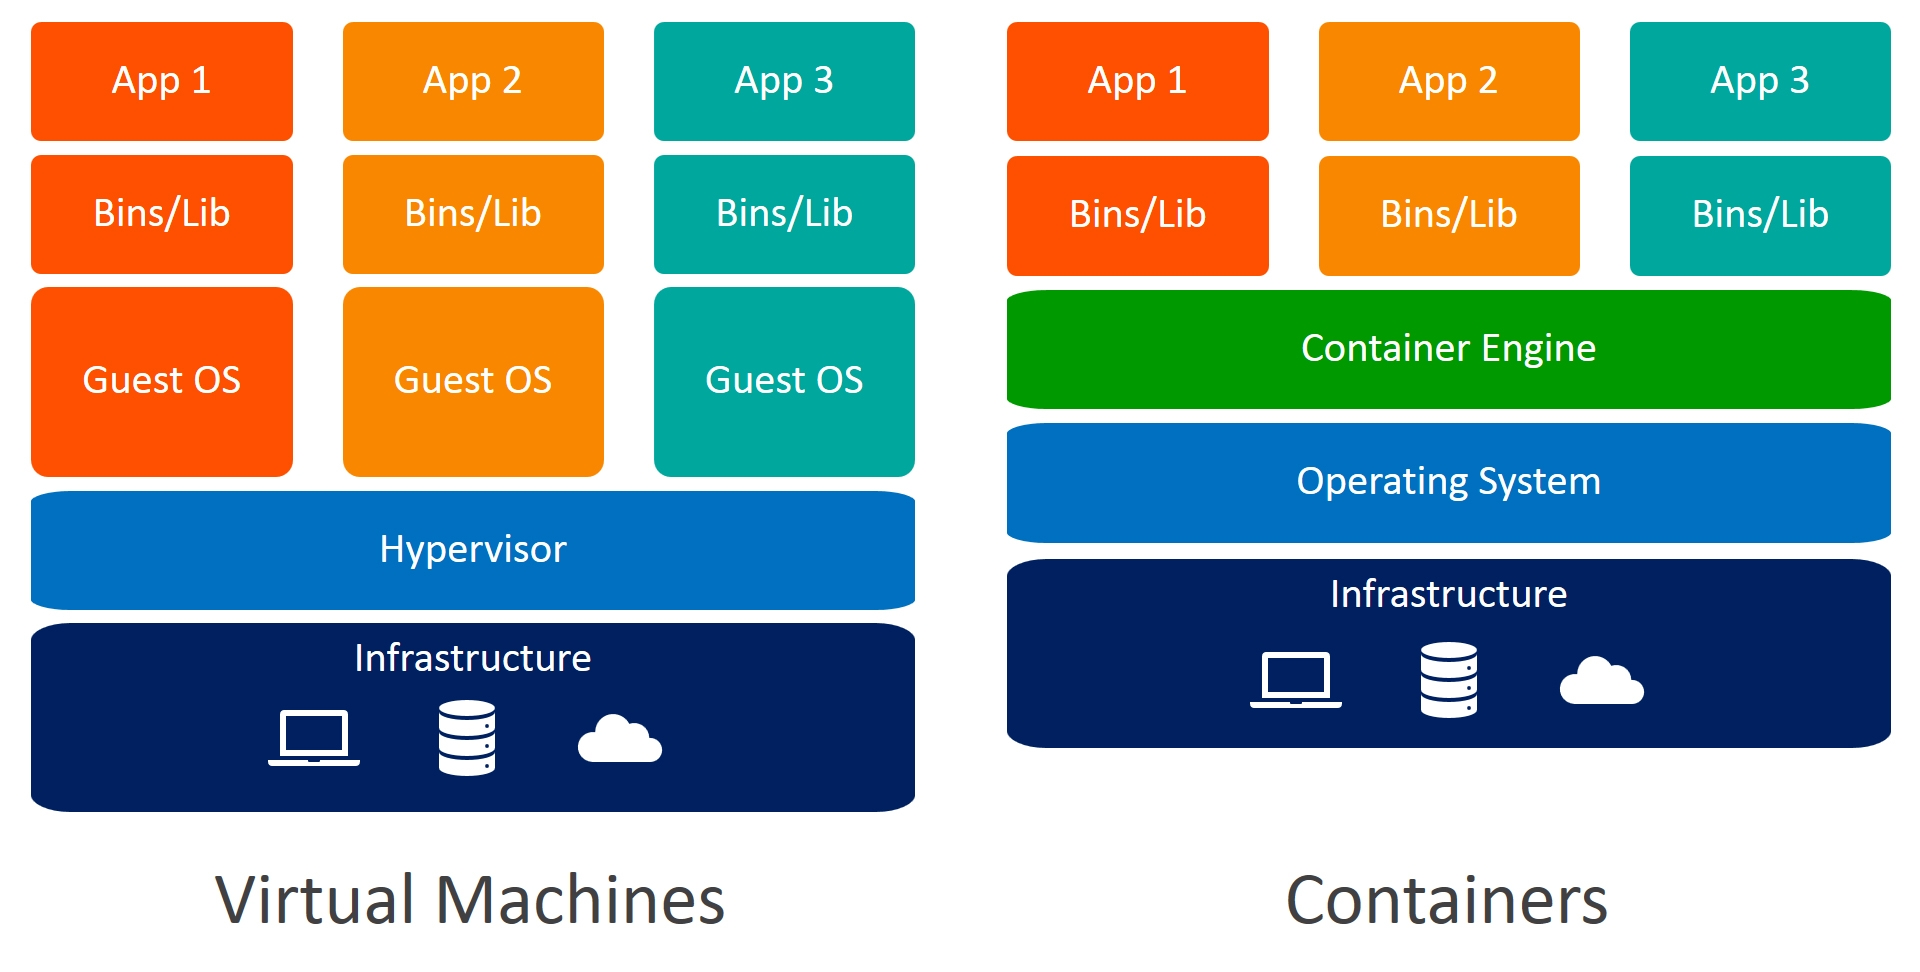 containers-vs-virtual-machines.jpg